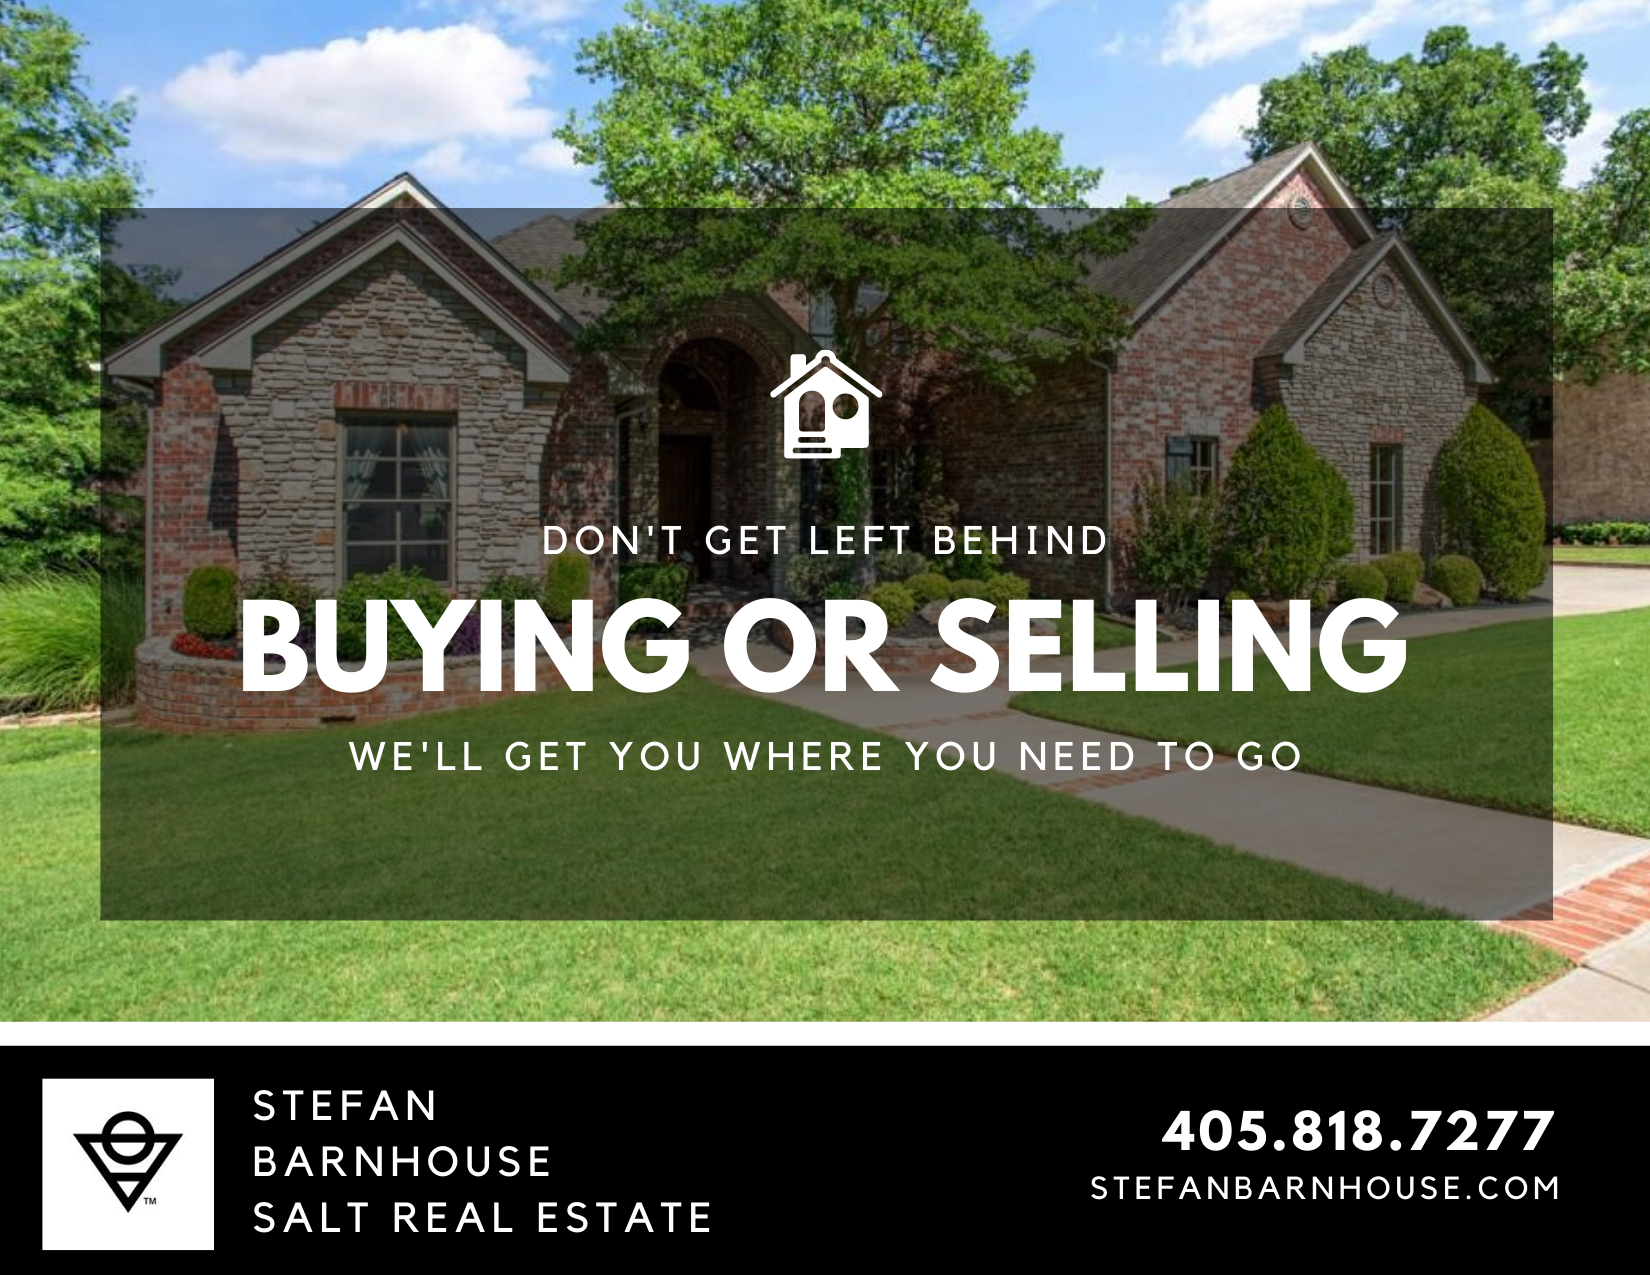 Stefan Barnhouse-Salt Real Estate